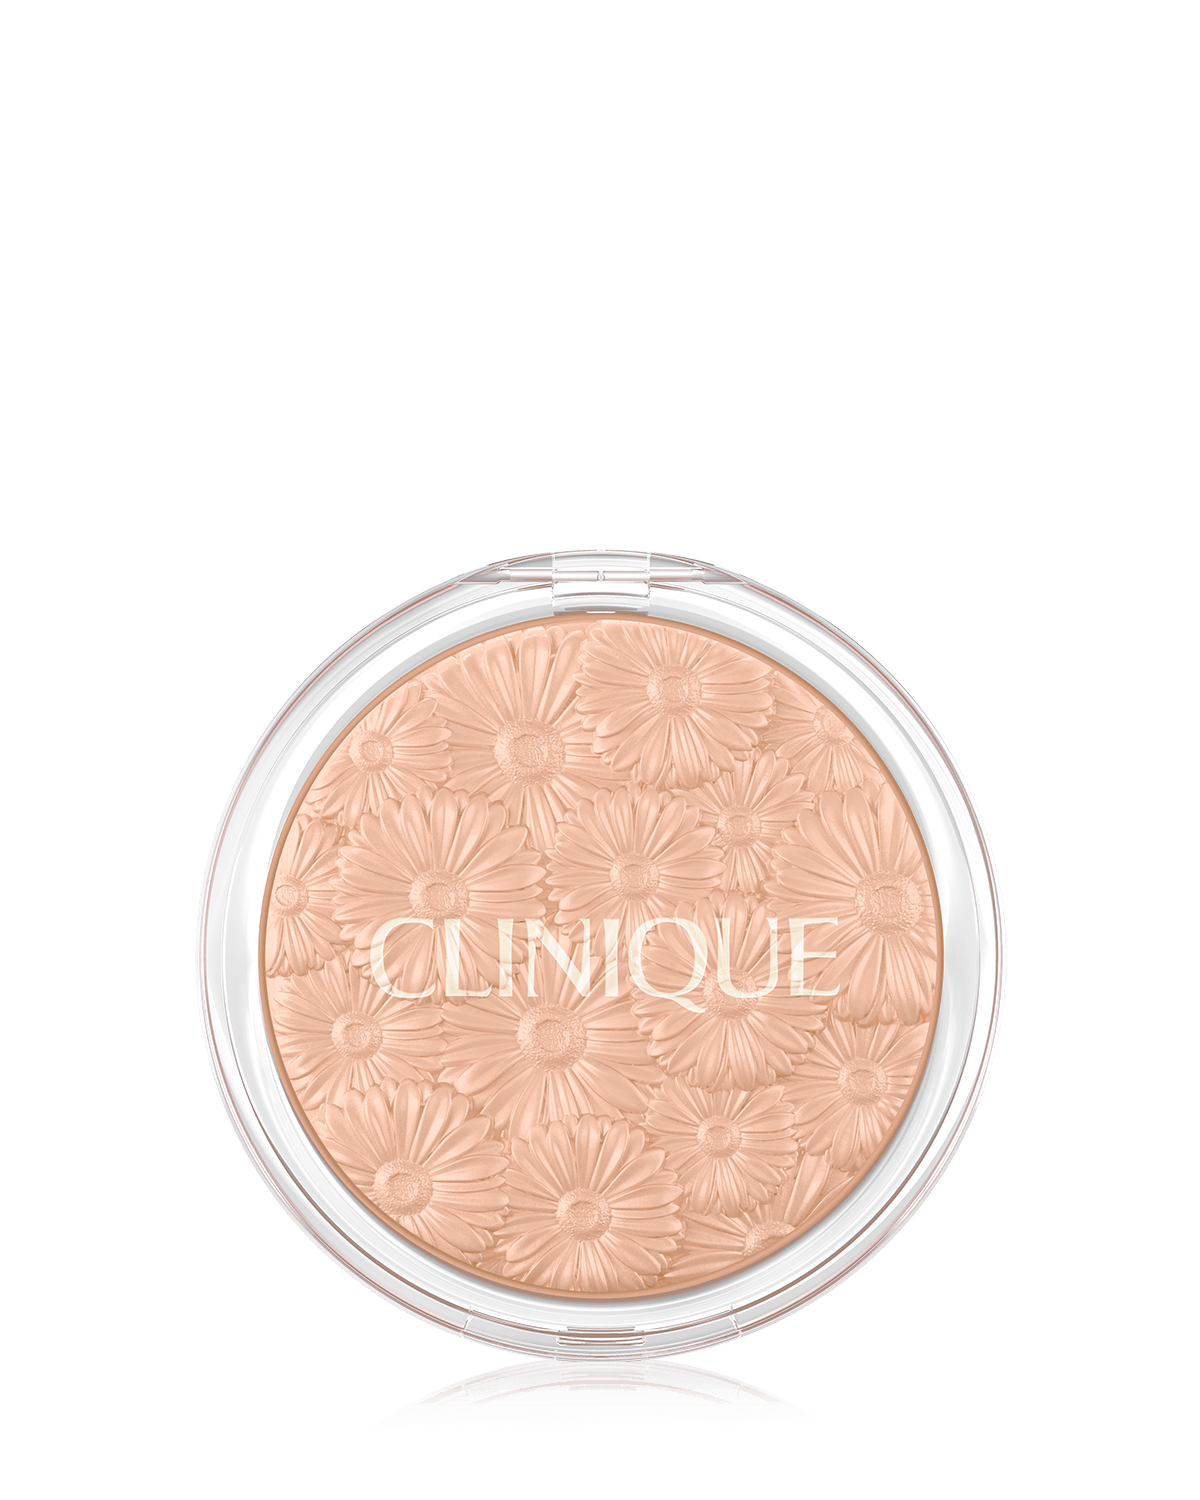 Illuminateur Powder Pop™ Flower